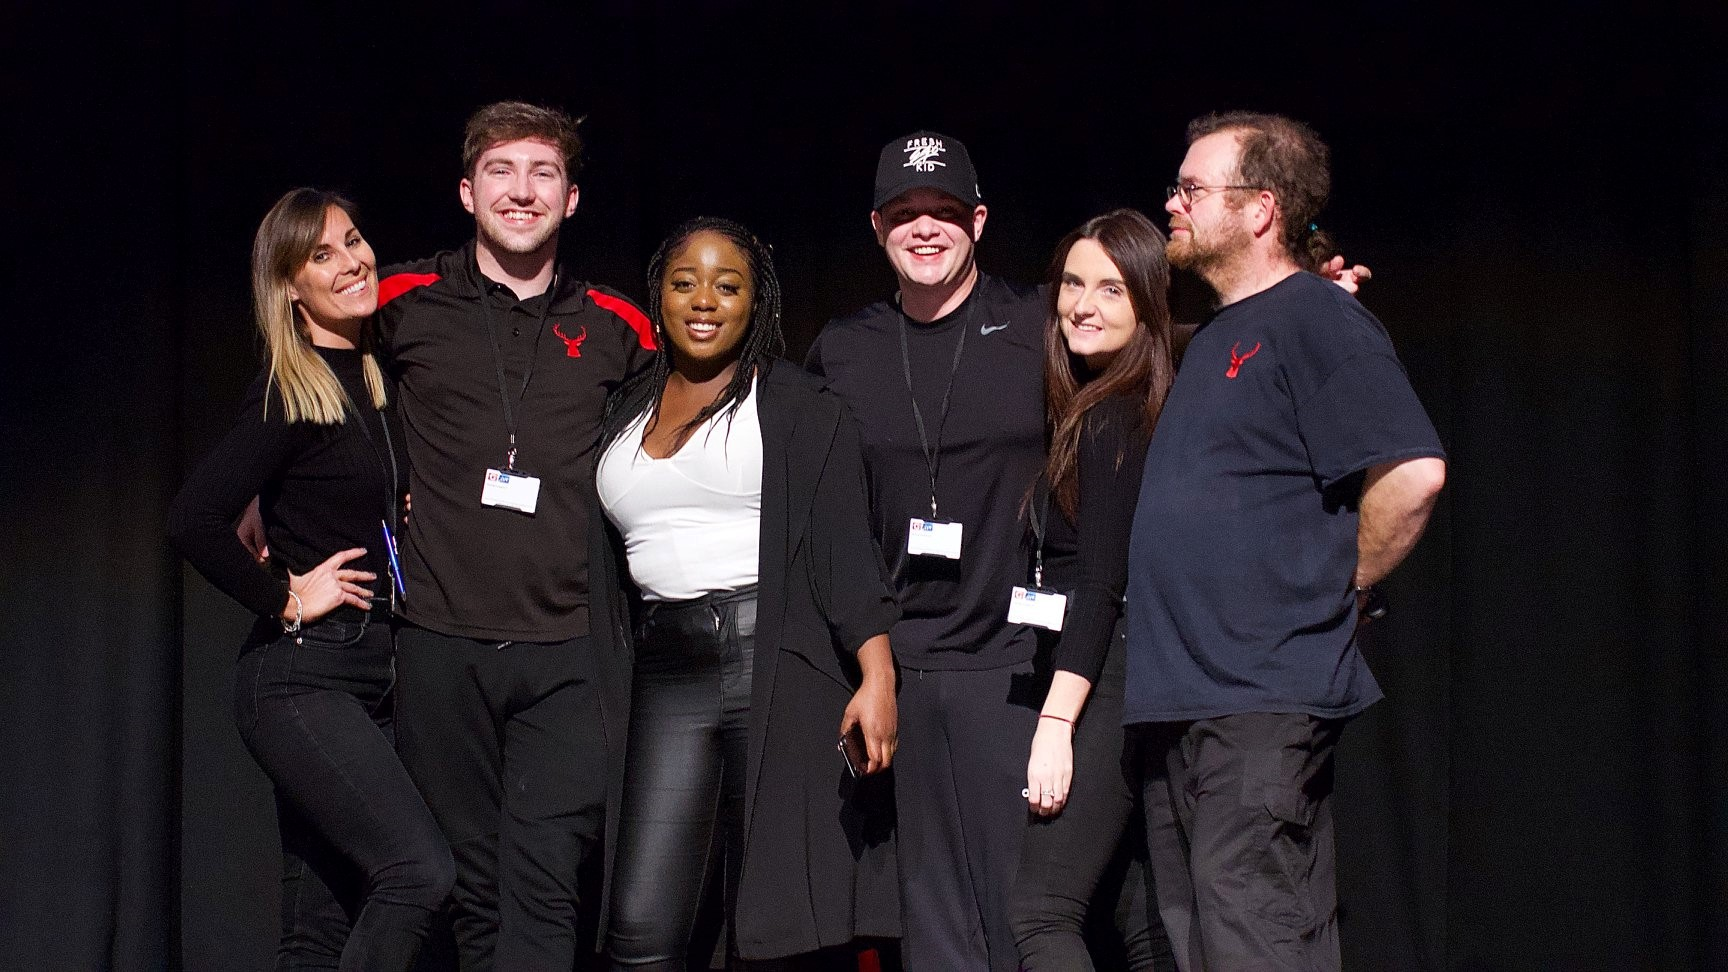 James and 4 other members of staff who work in the community zone of the Surrey Students' union.